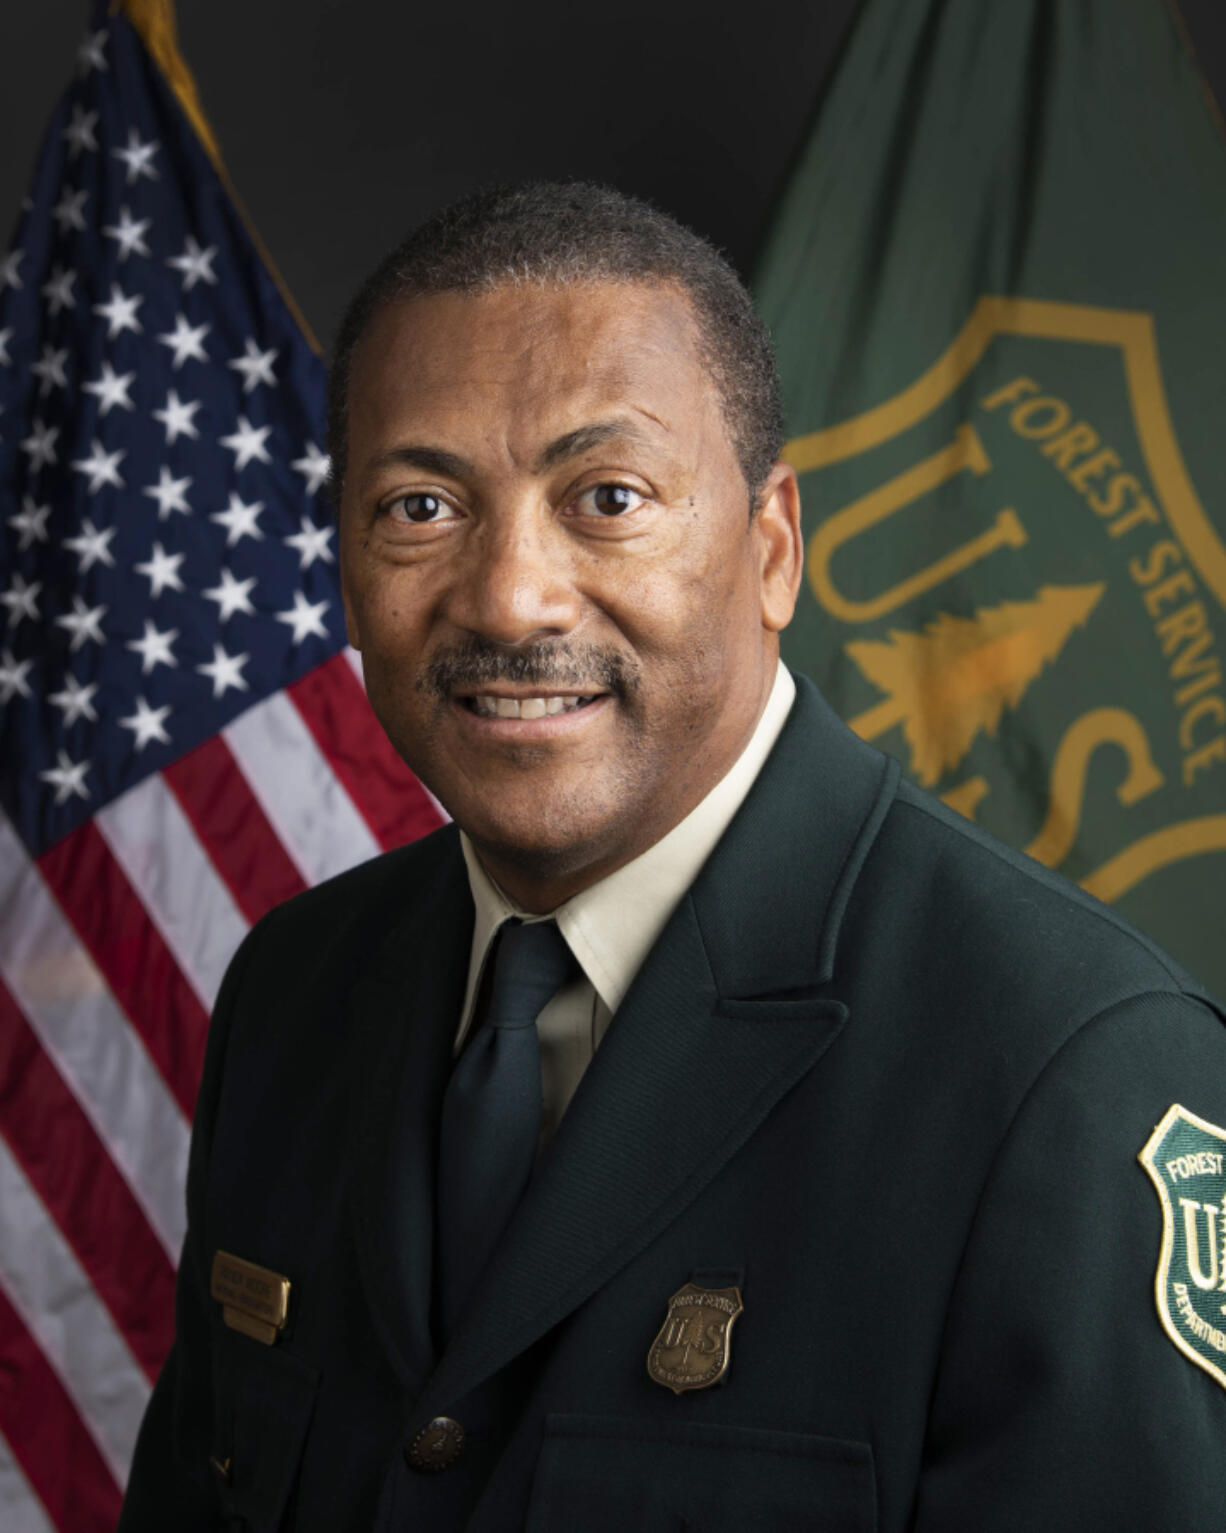 United States Department of Agriculture Forest Service Chief Randy Moore on August 25, 2021.